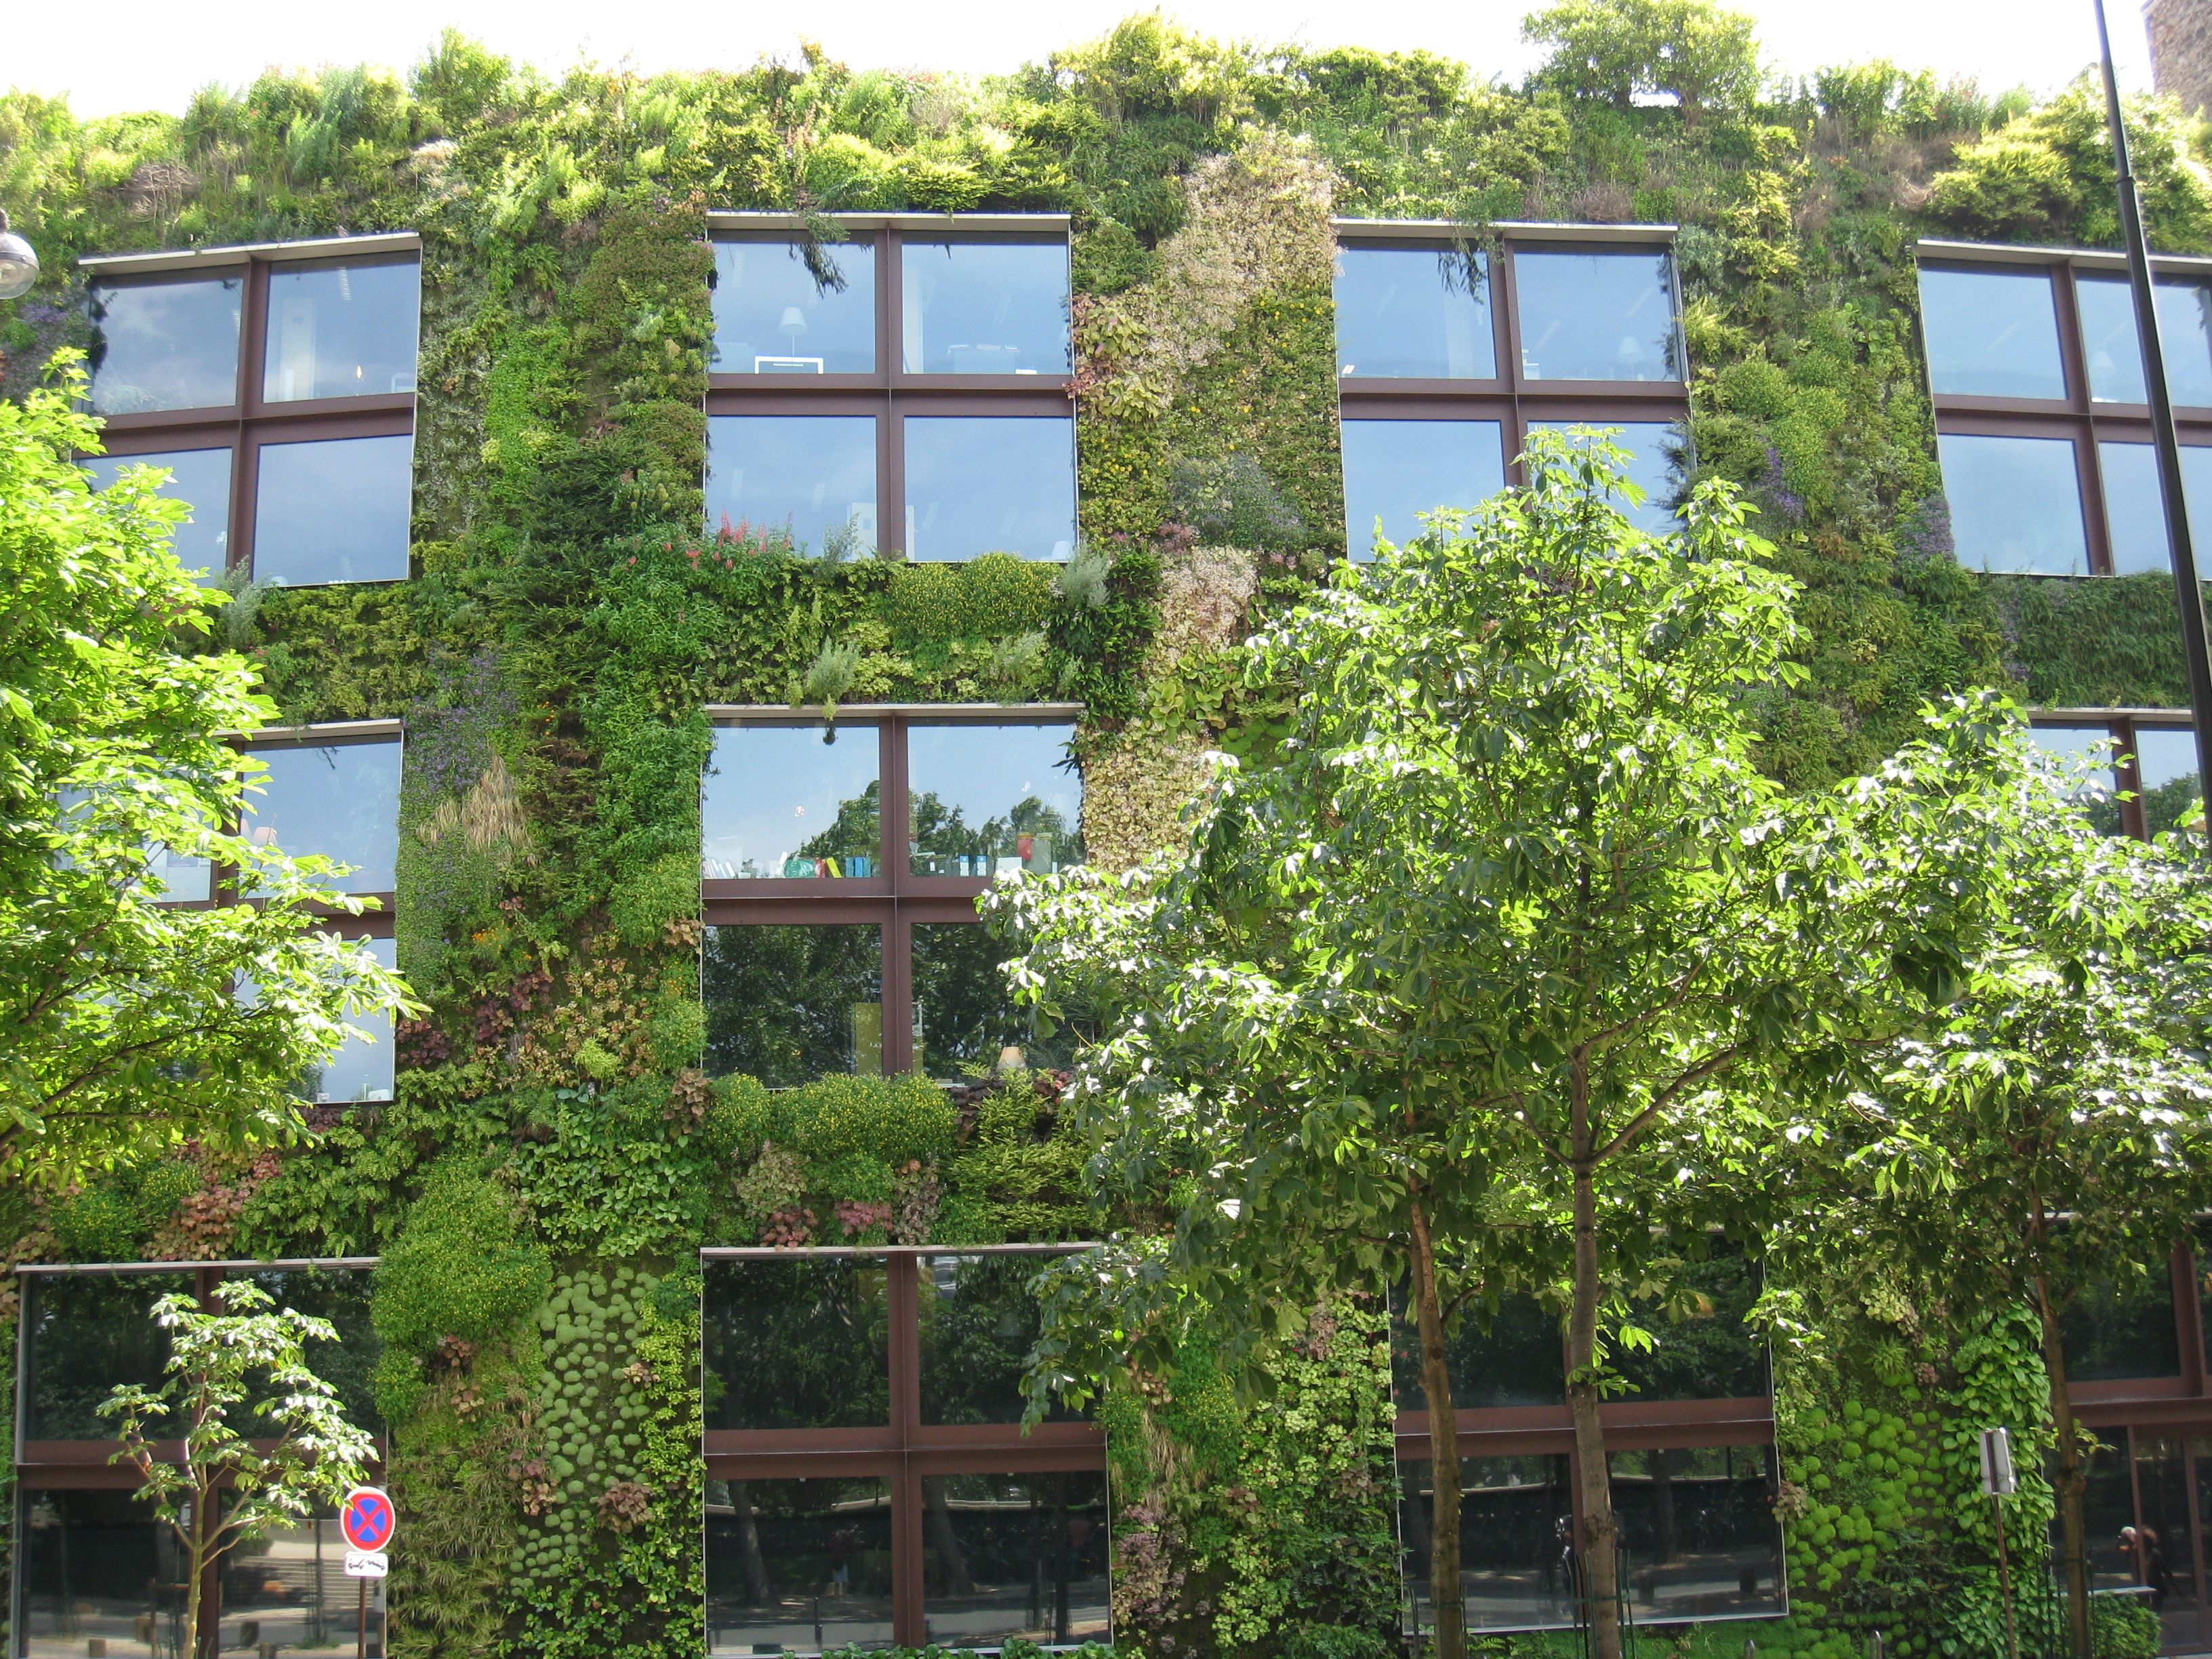 eco friendly sustainable building Steelmaster offers environmentally friendly buildings made from 80% recycled  steel for building green homes or ecologically sustainable business space.